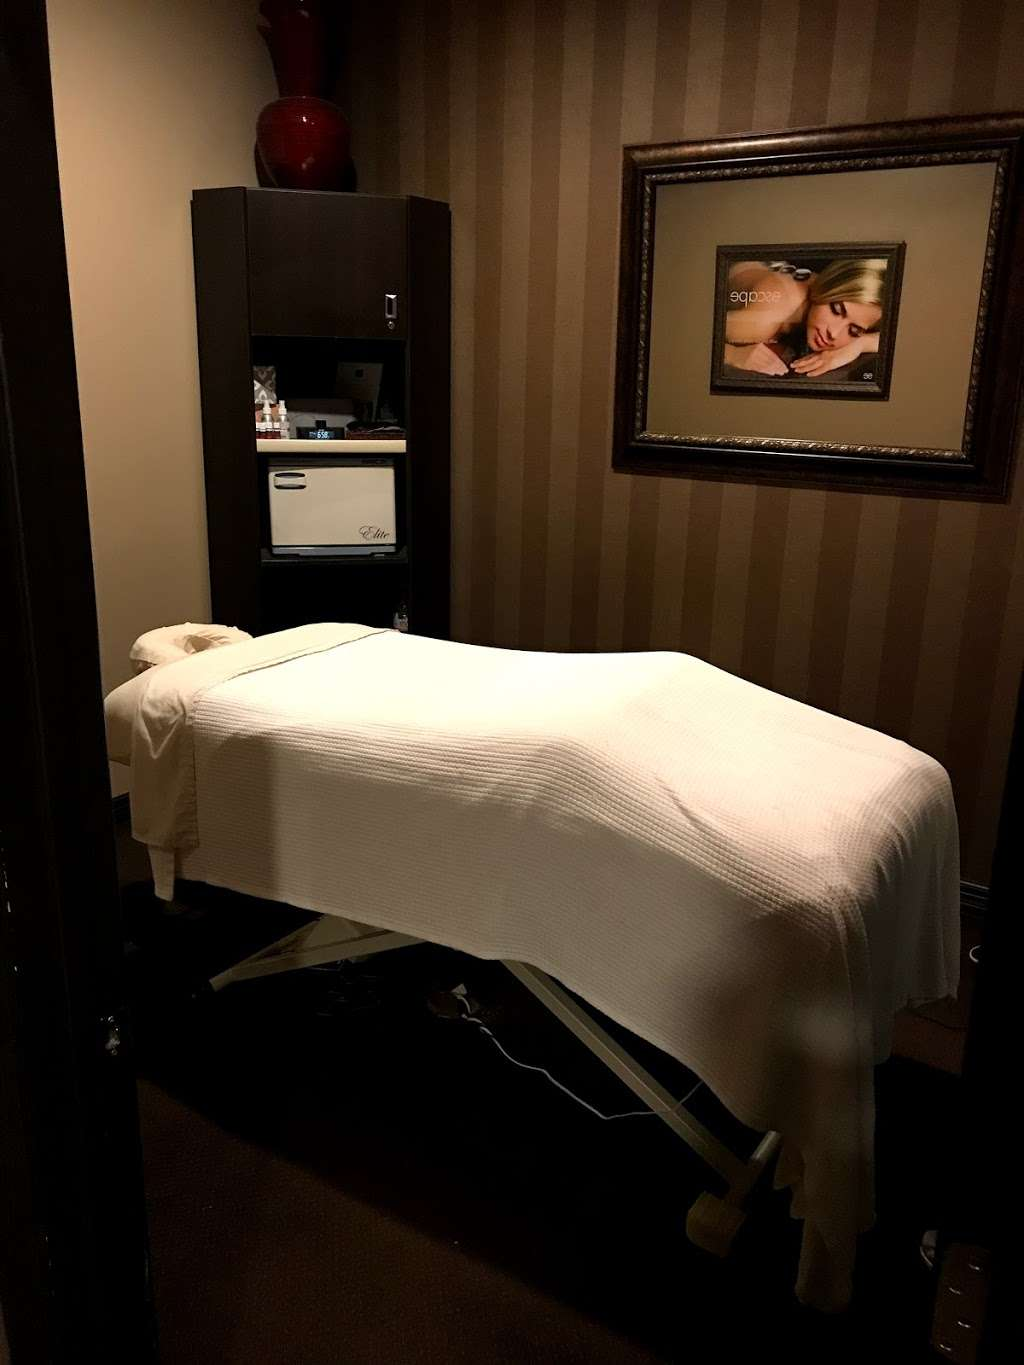 Epique Massage - spa  | Photo 2 of 10 | Address: 2970 S Shepherd Dr, Houston, TX 77098, USA | Phone: (713) 227-4783